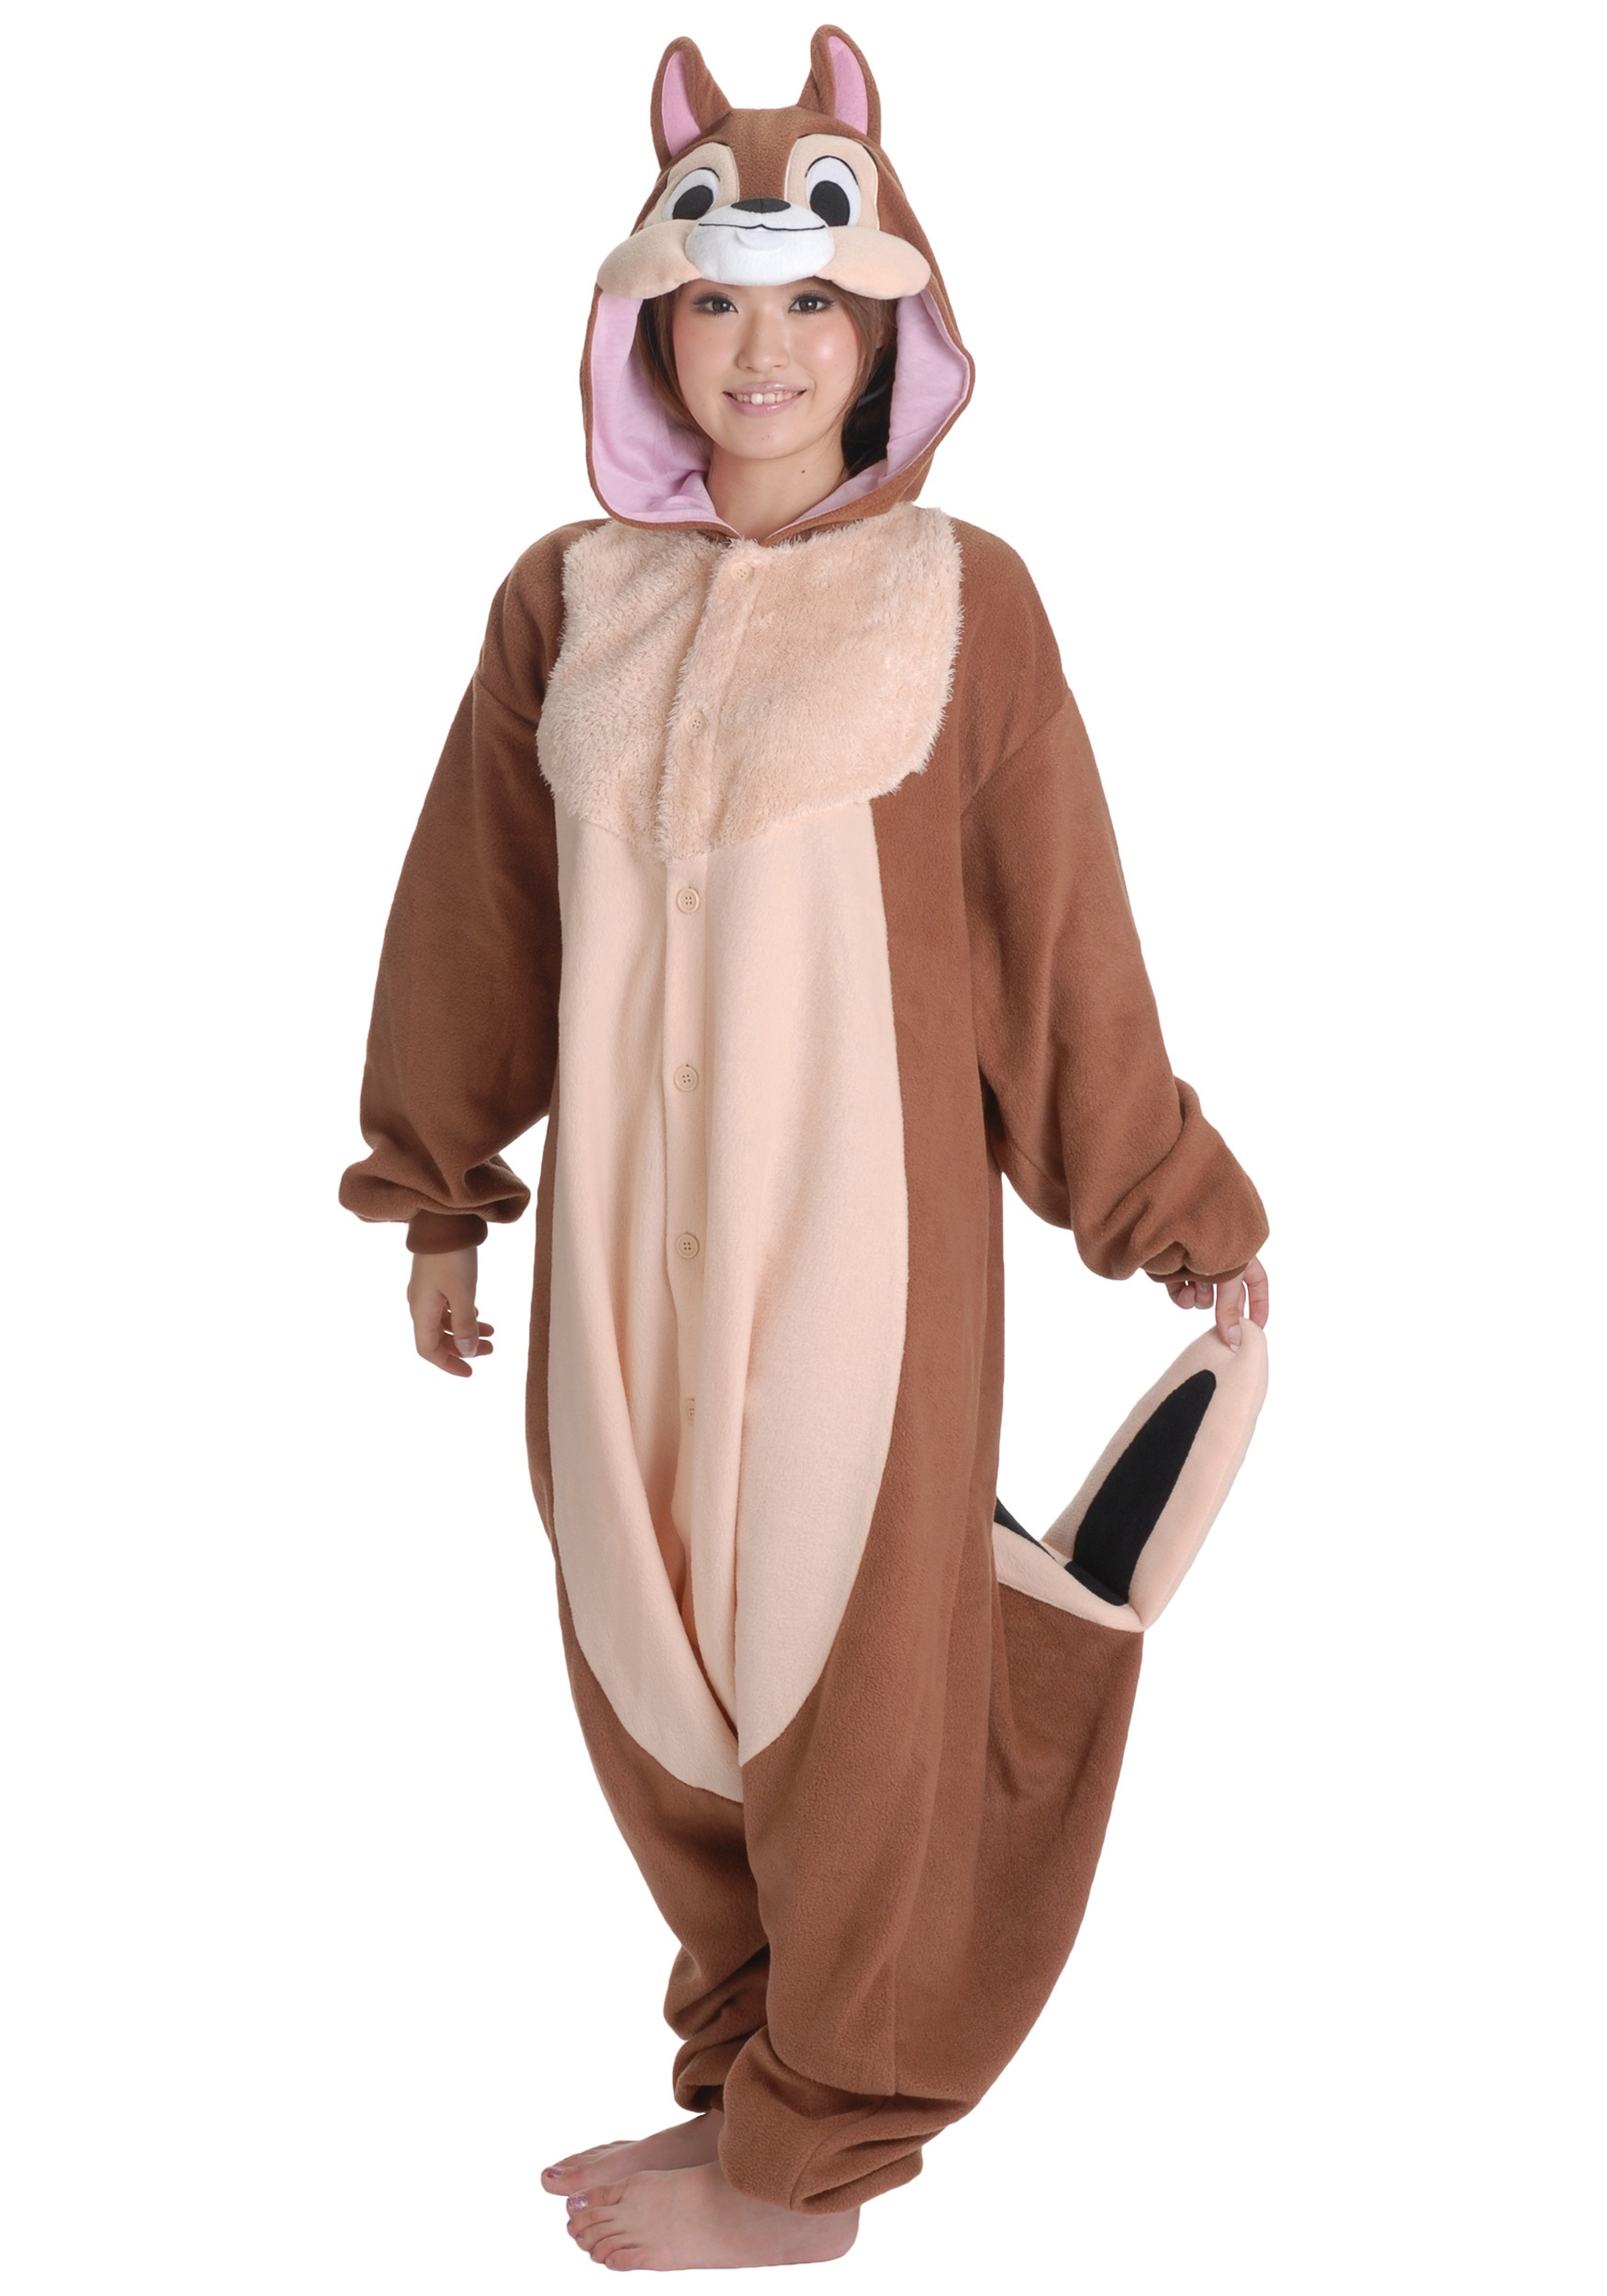 7a3c2add2d45 chip-pajama-costume.jpg